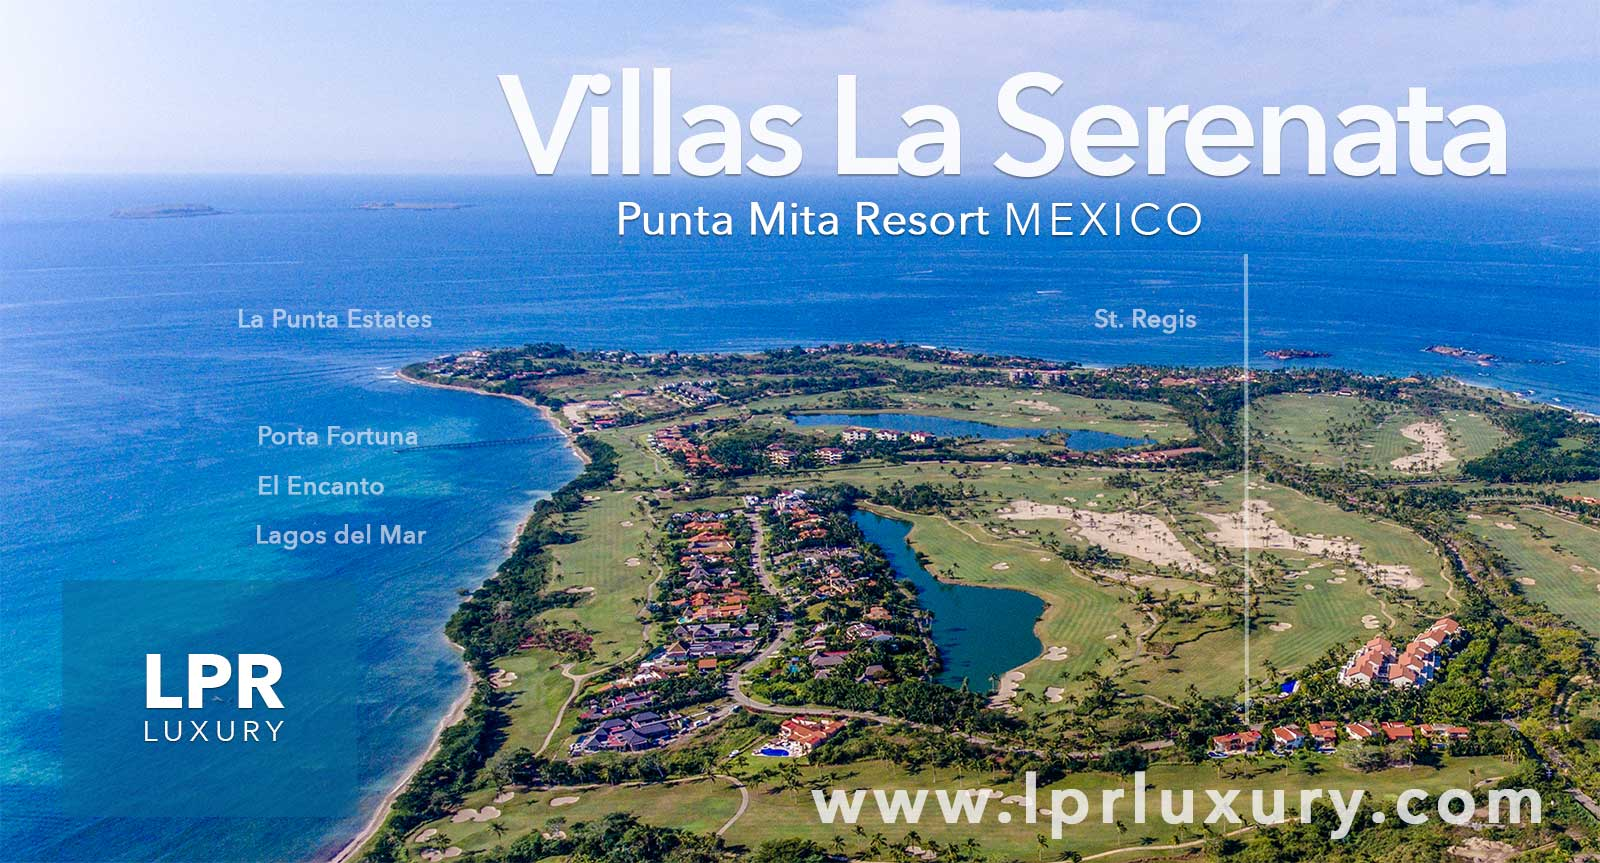 Villas La Serenata at the exclusive Punta Mita Resort, Riviera Nayarit, Mexico